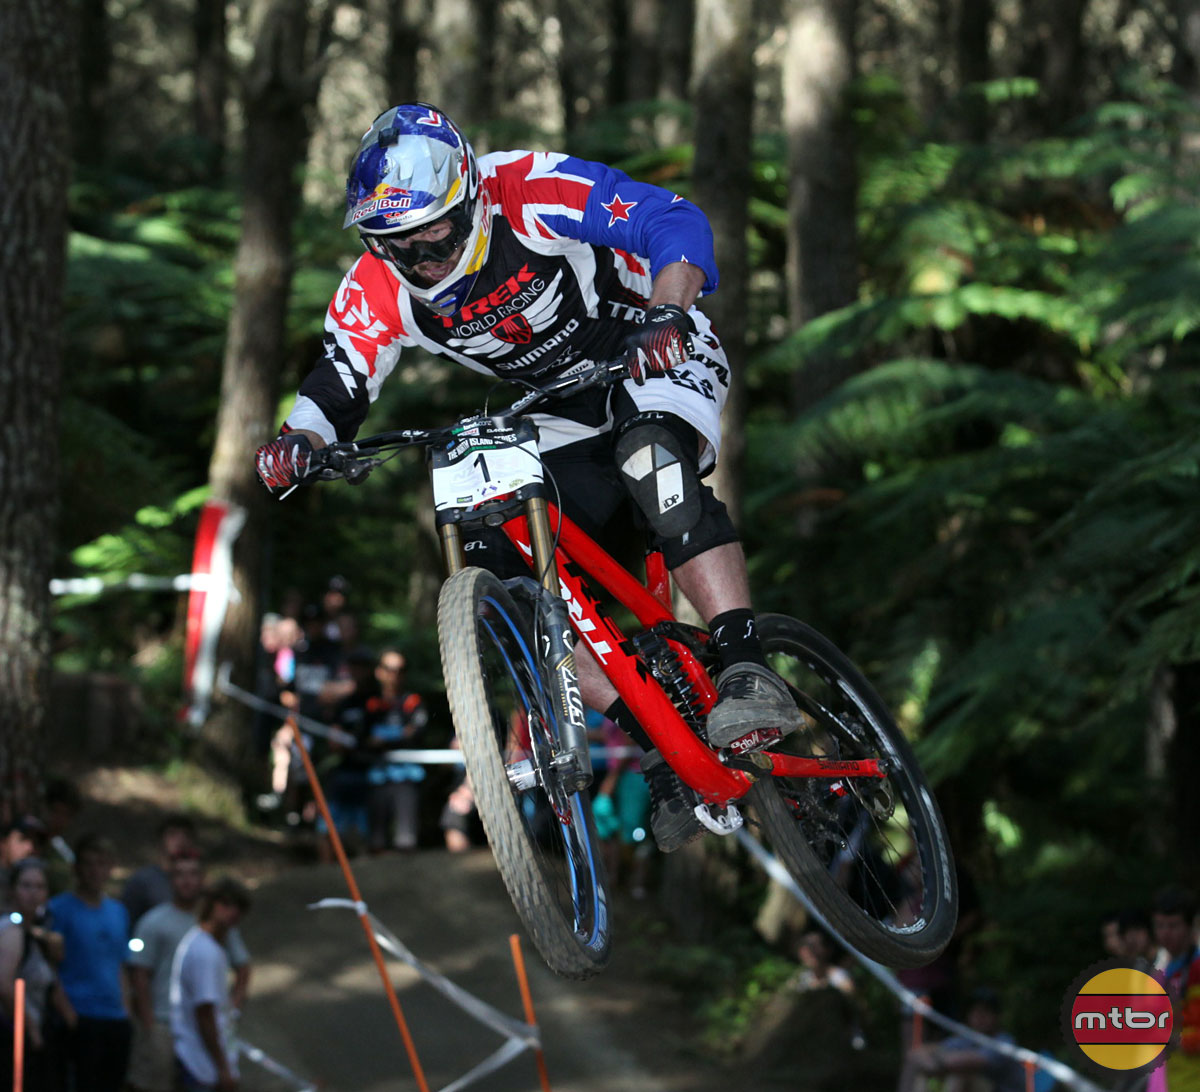 885012ec532 Hot News: Trek now testing 27.5 for downhill racing with new Session 650b  bike